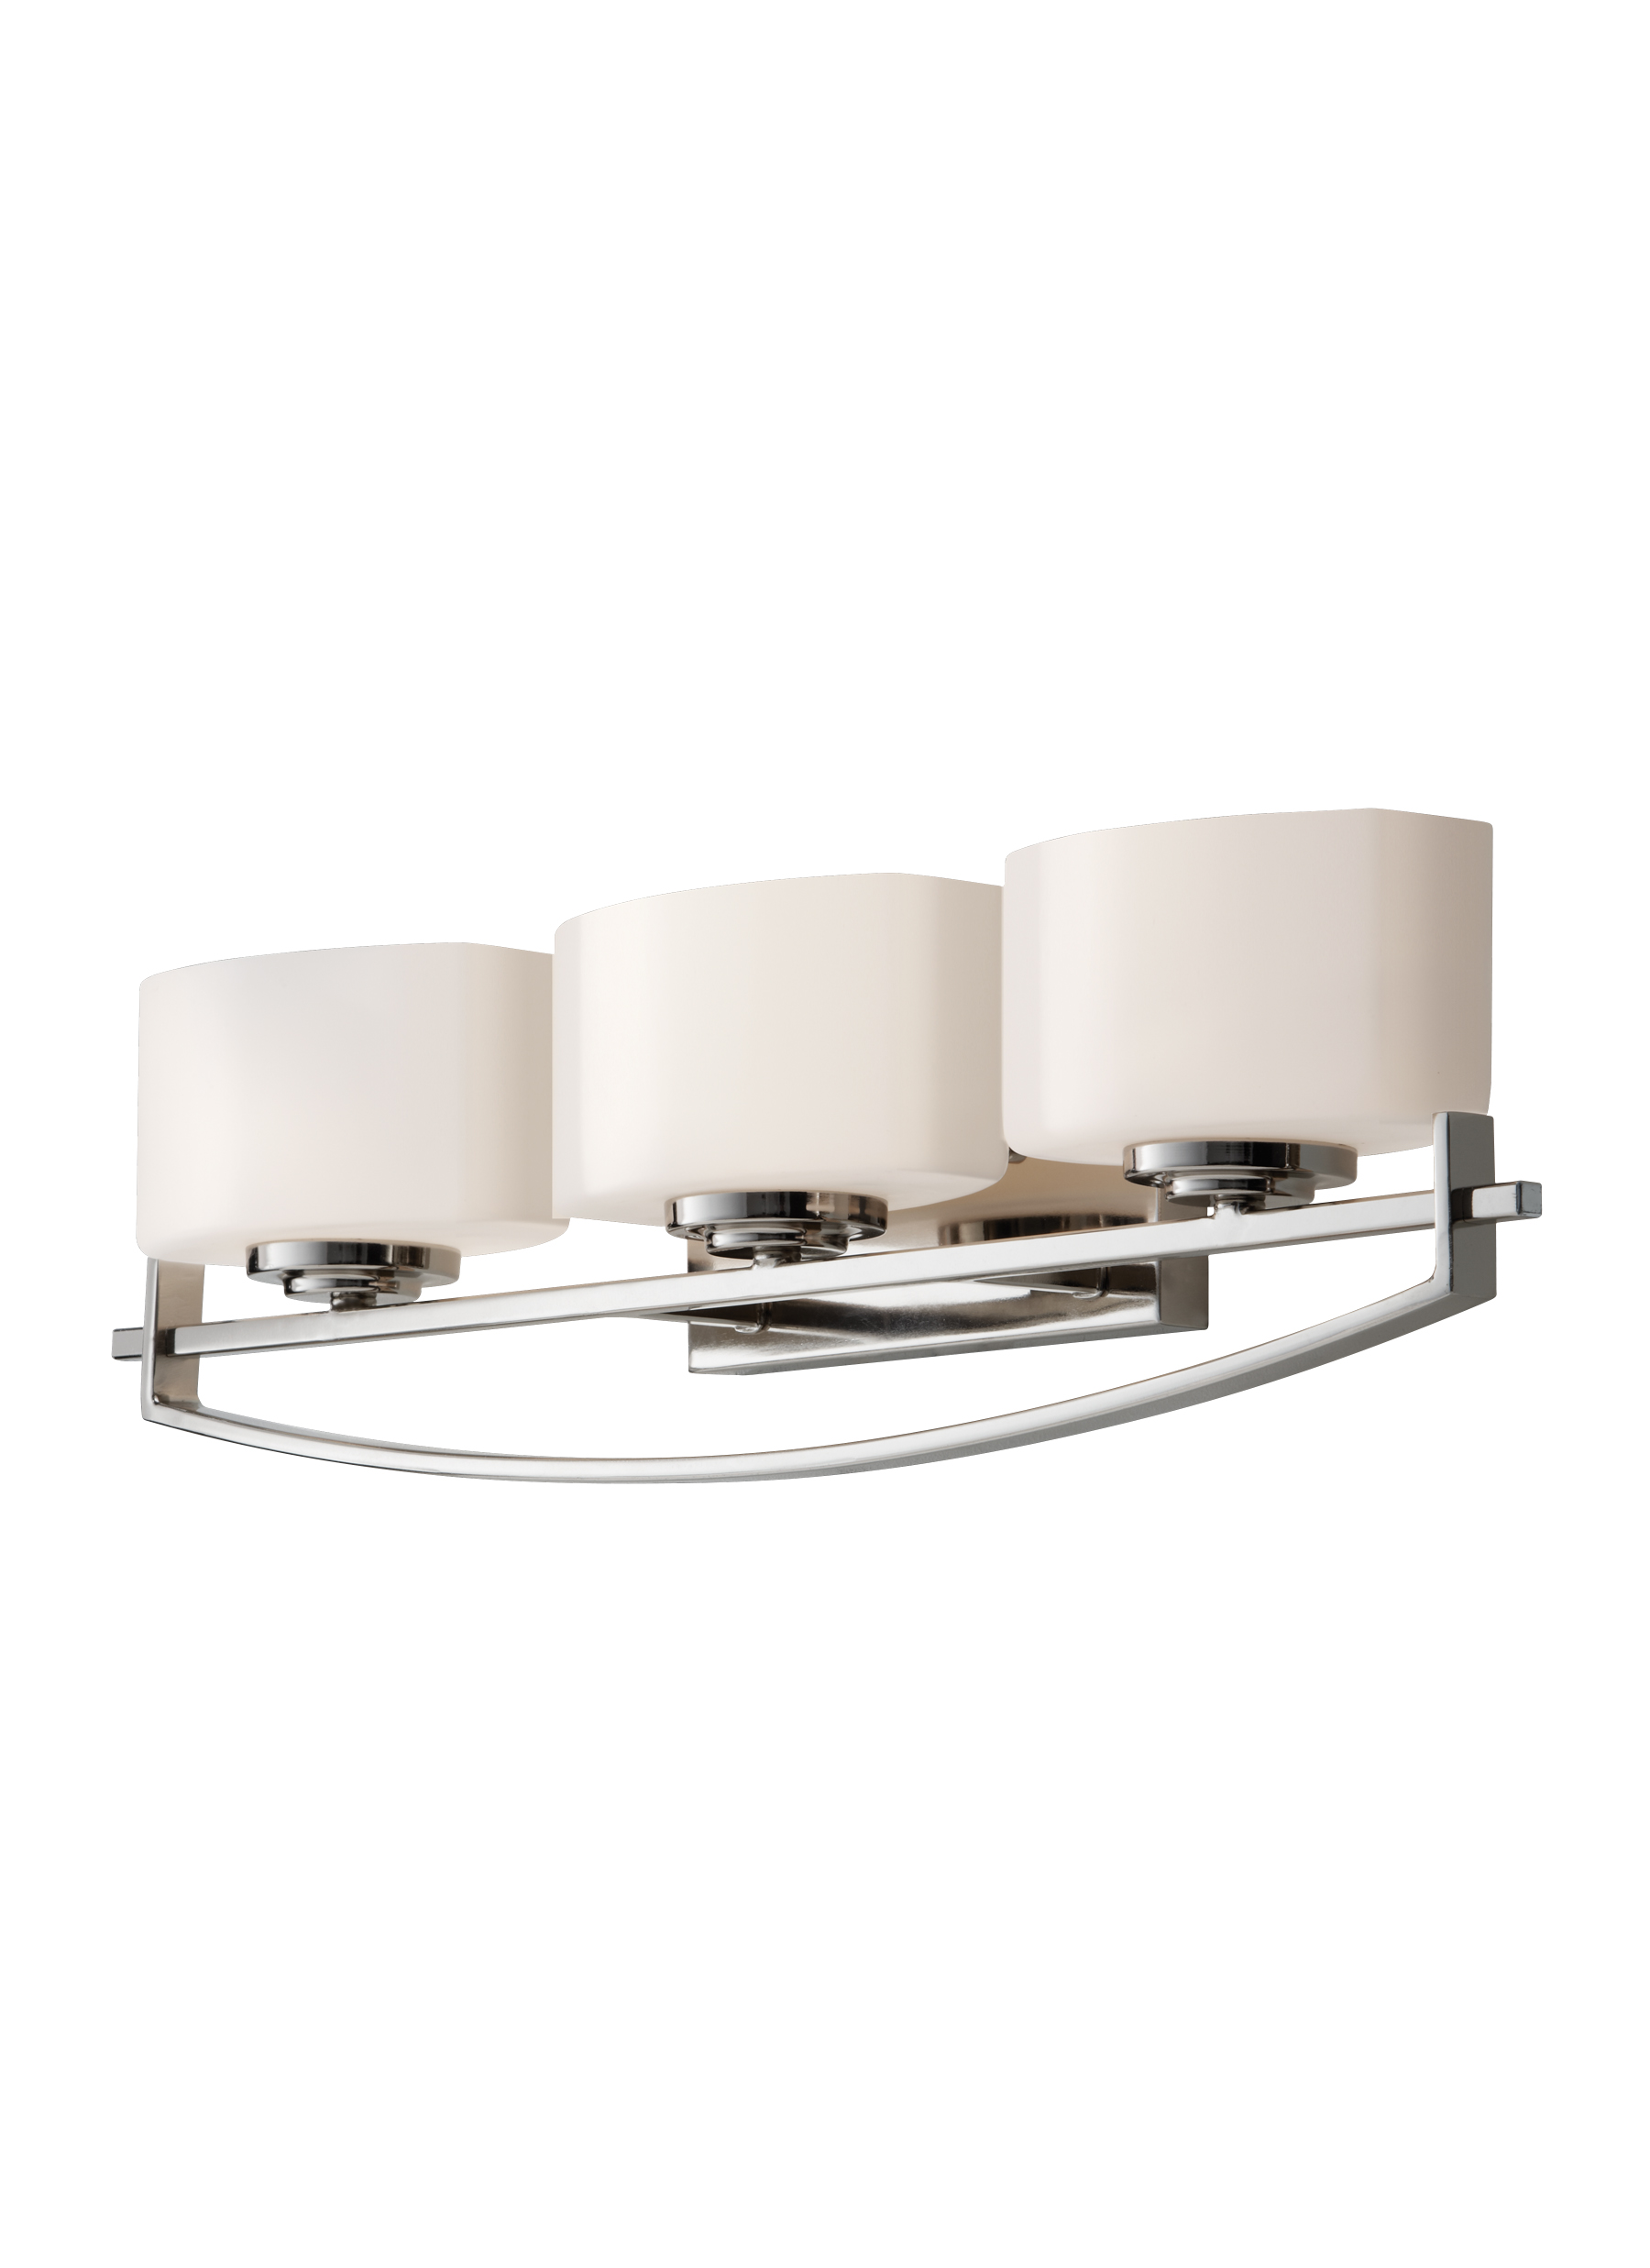 Bathroom Lighting Fixtures Polished Nickel vs18203-pn,3 - light vanity fixture,polished nickel